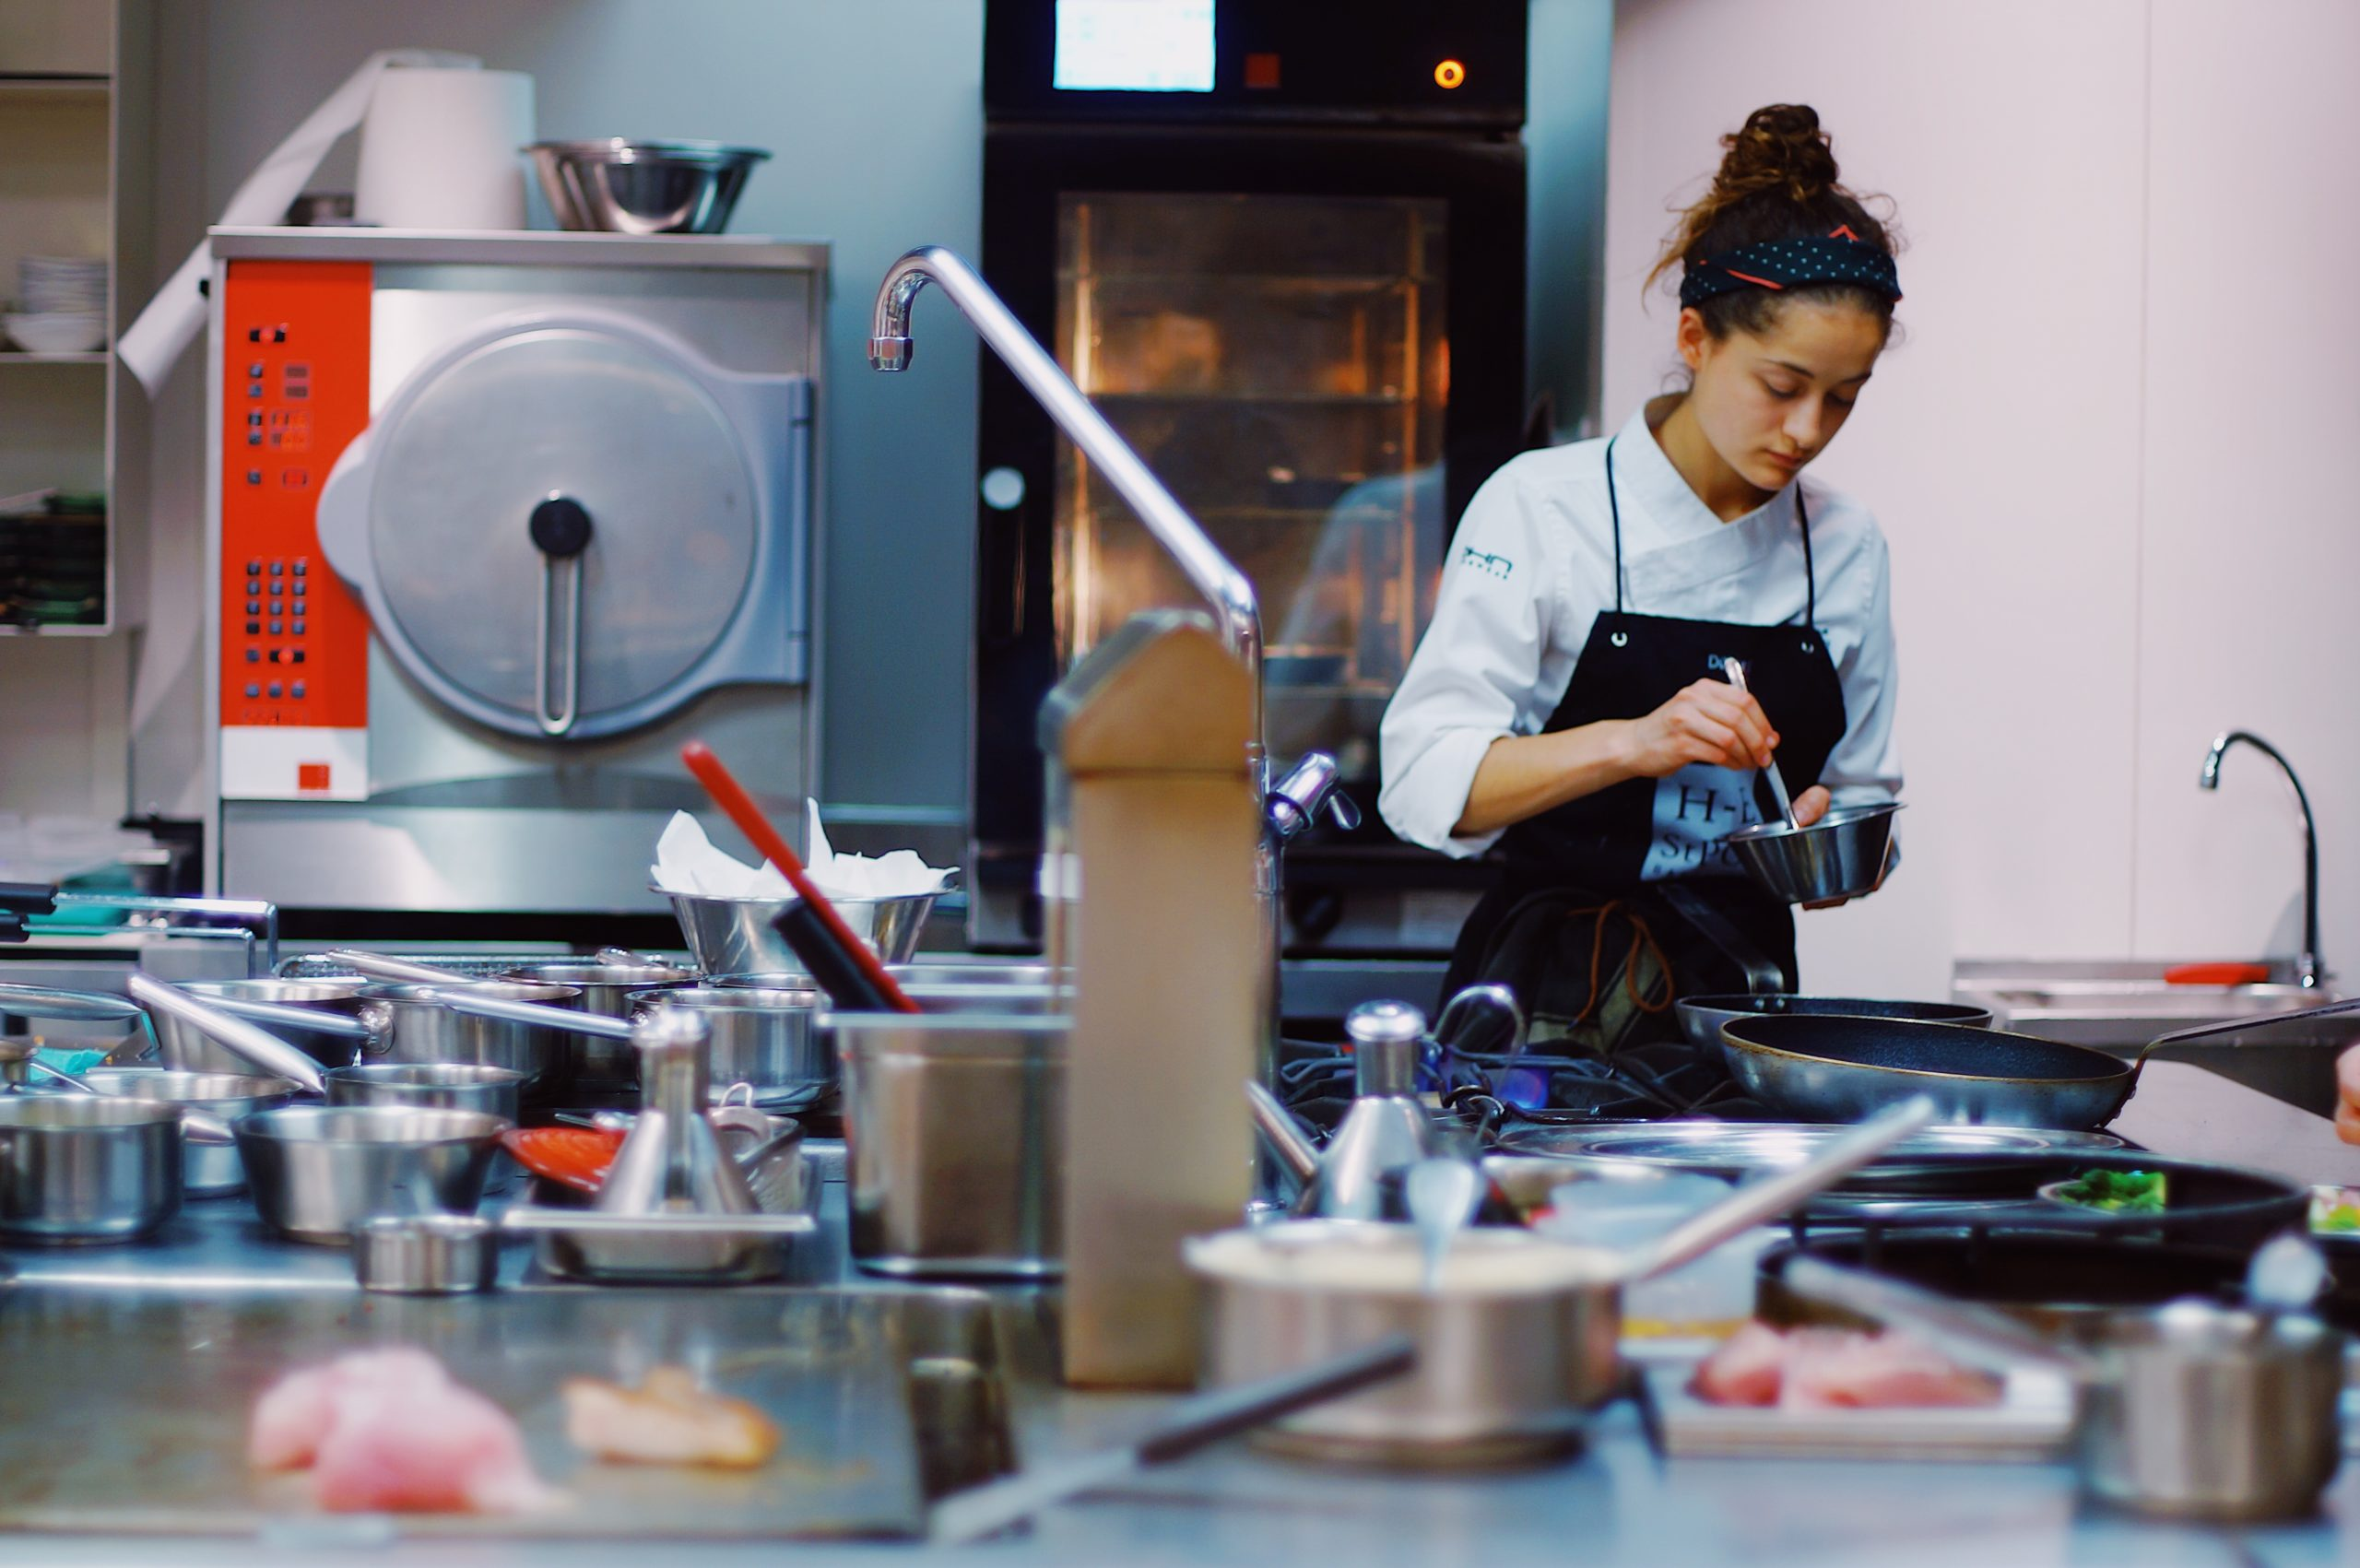 Women in the Culinary Industry: the Revenge of French Chefs